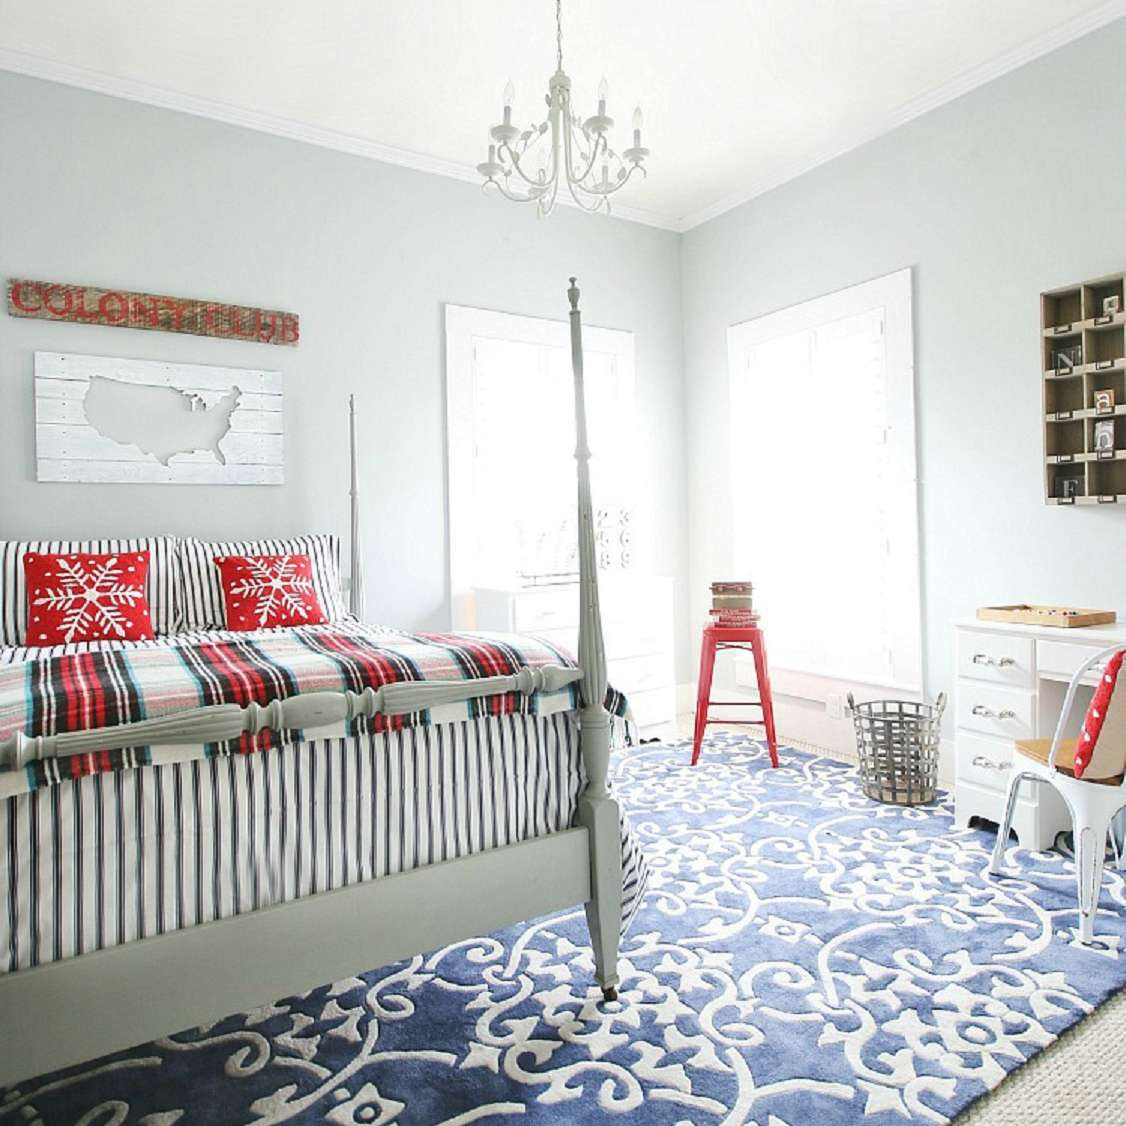 Red, white, and blue farmhouse bedroom